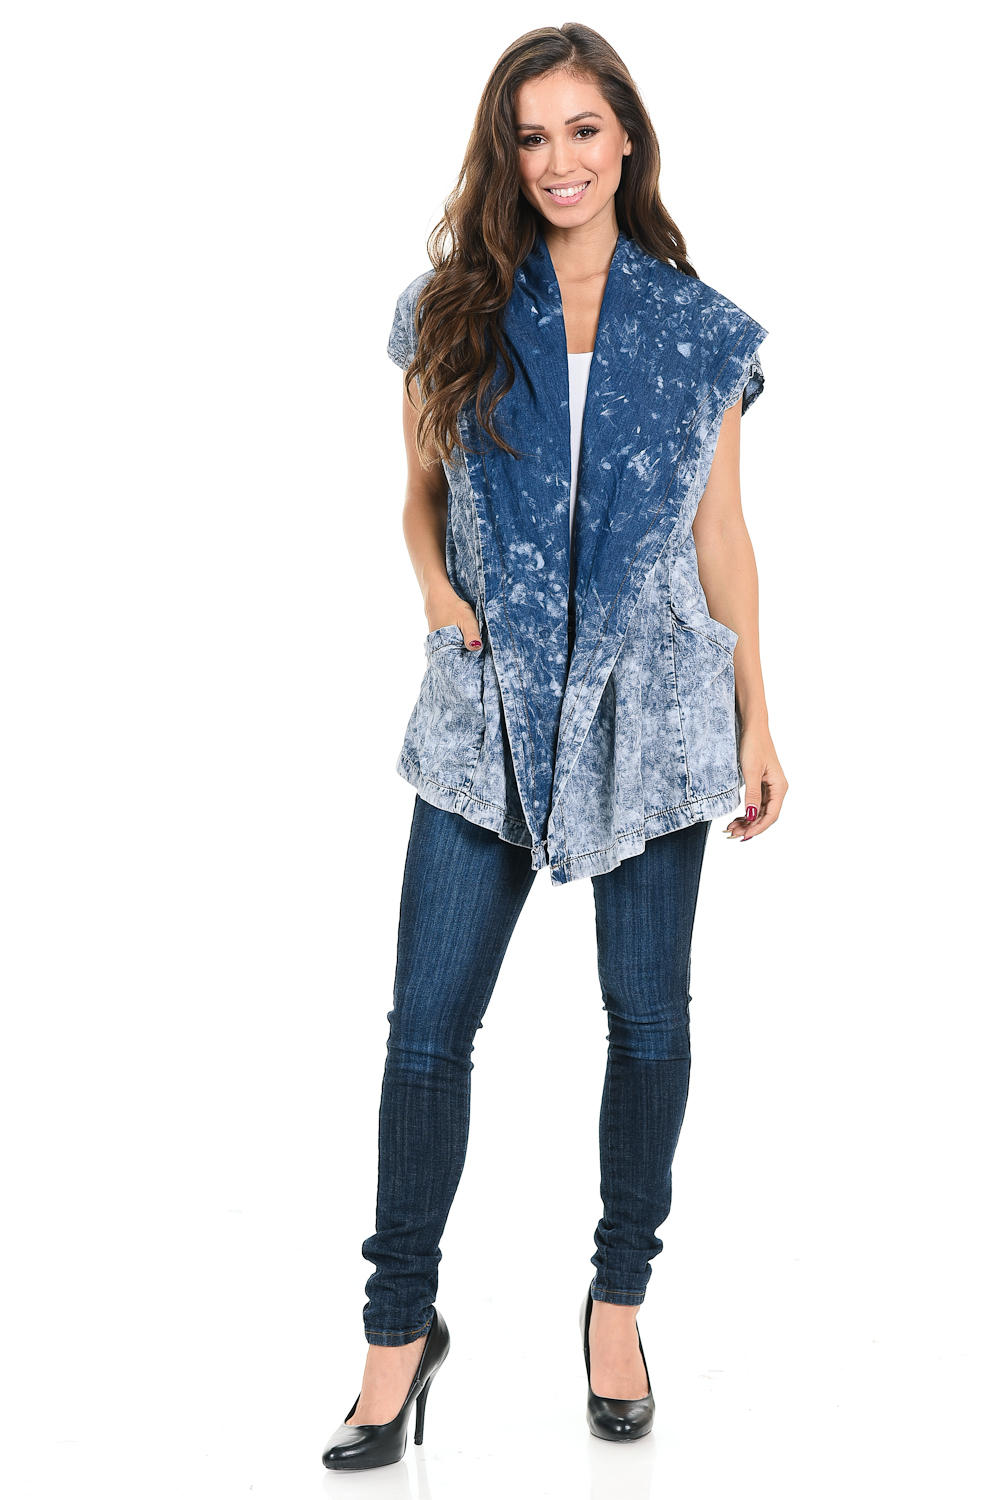 Sweet Look Women's Denim Jacket - Style K776